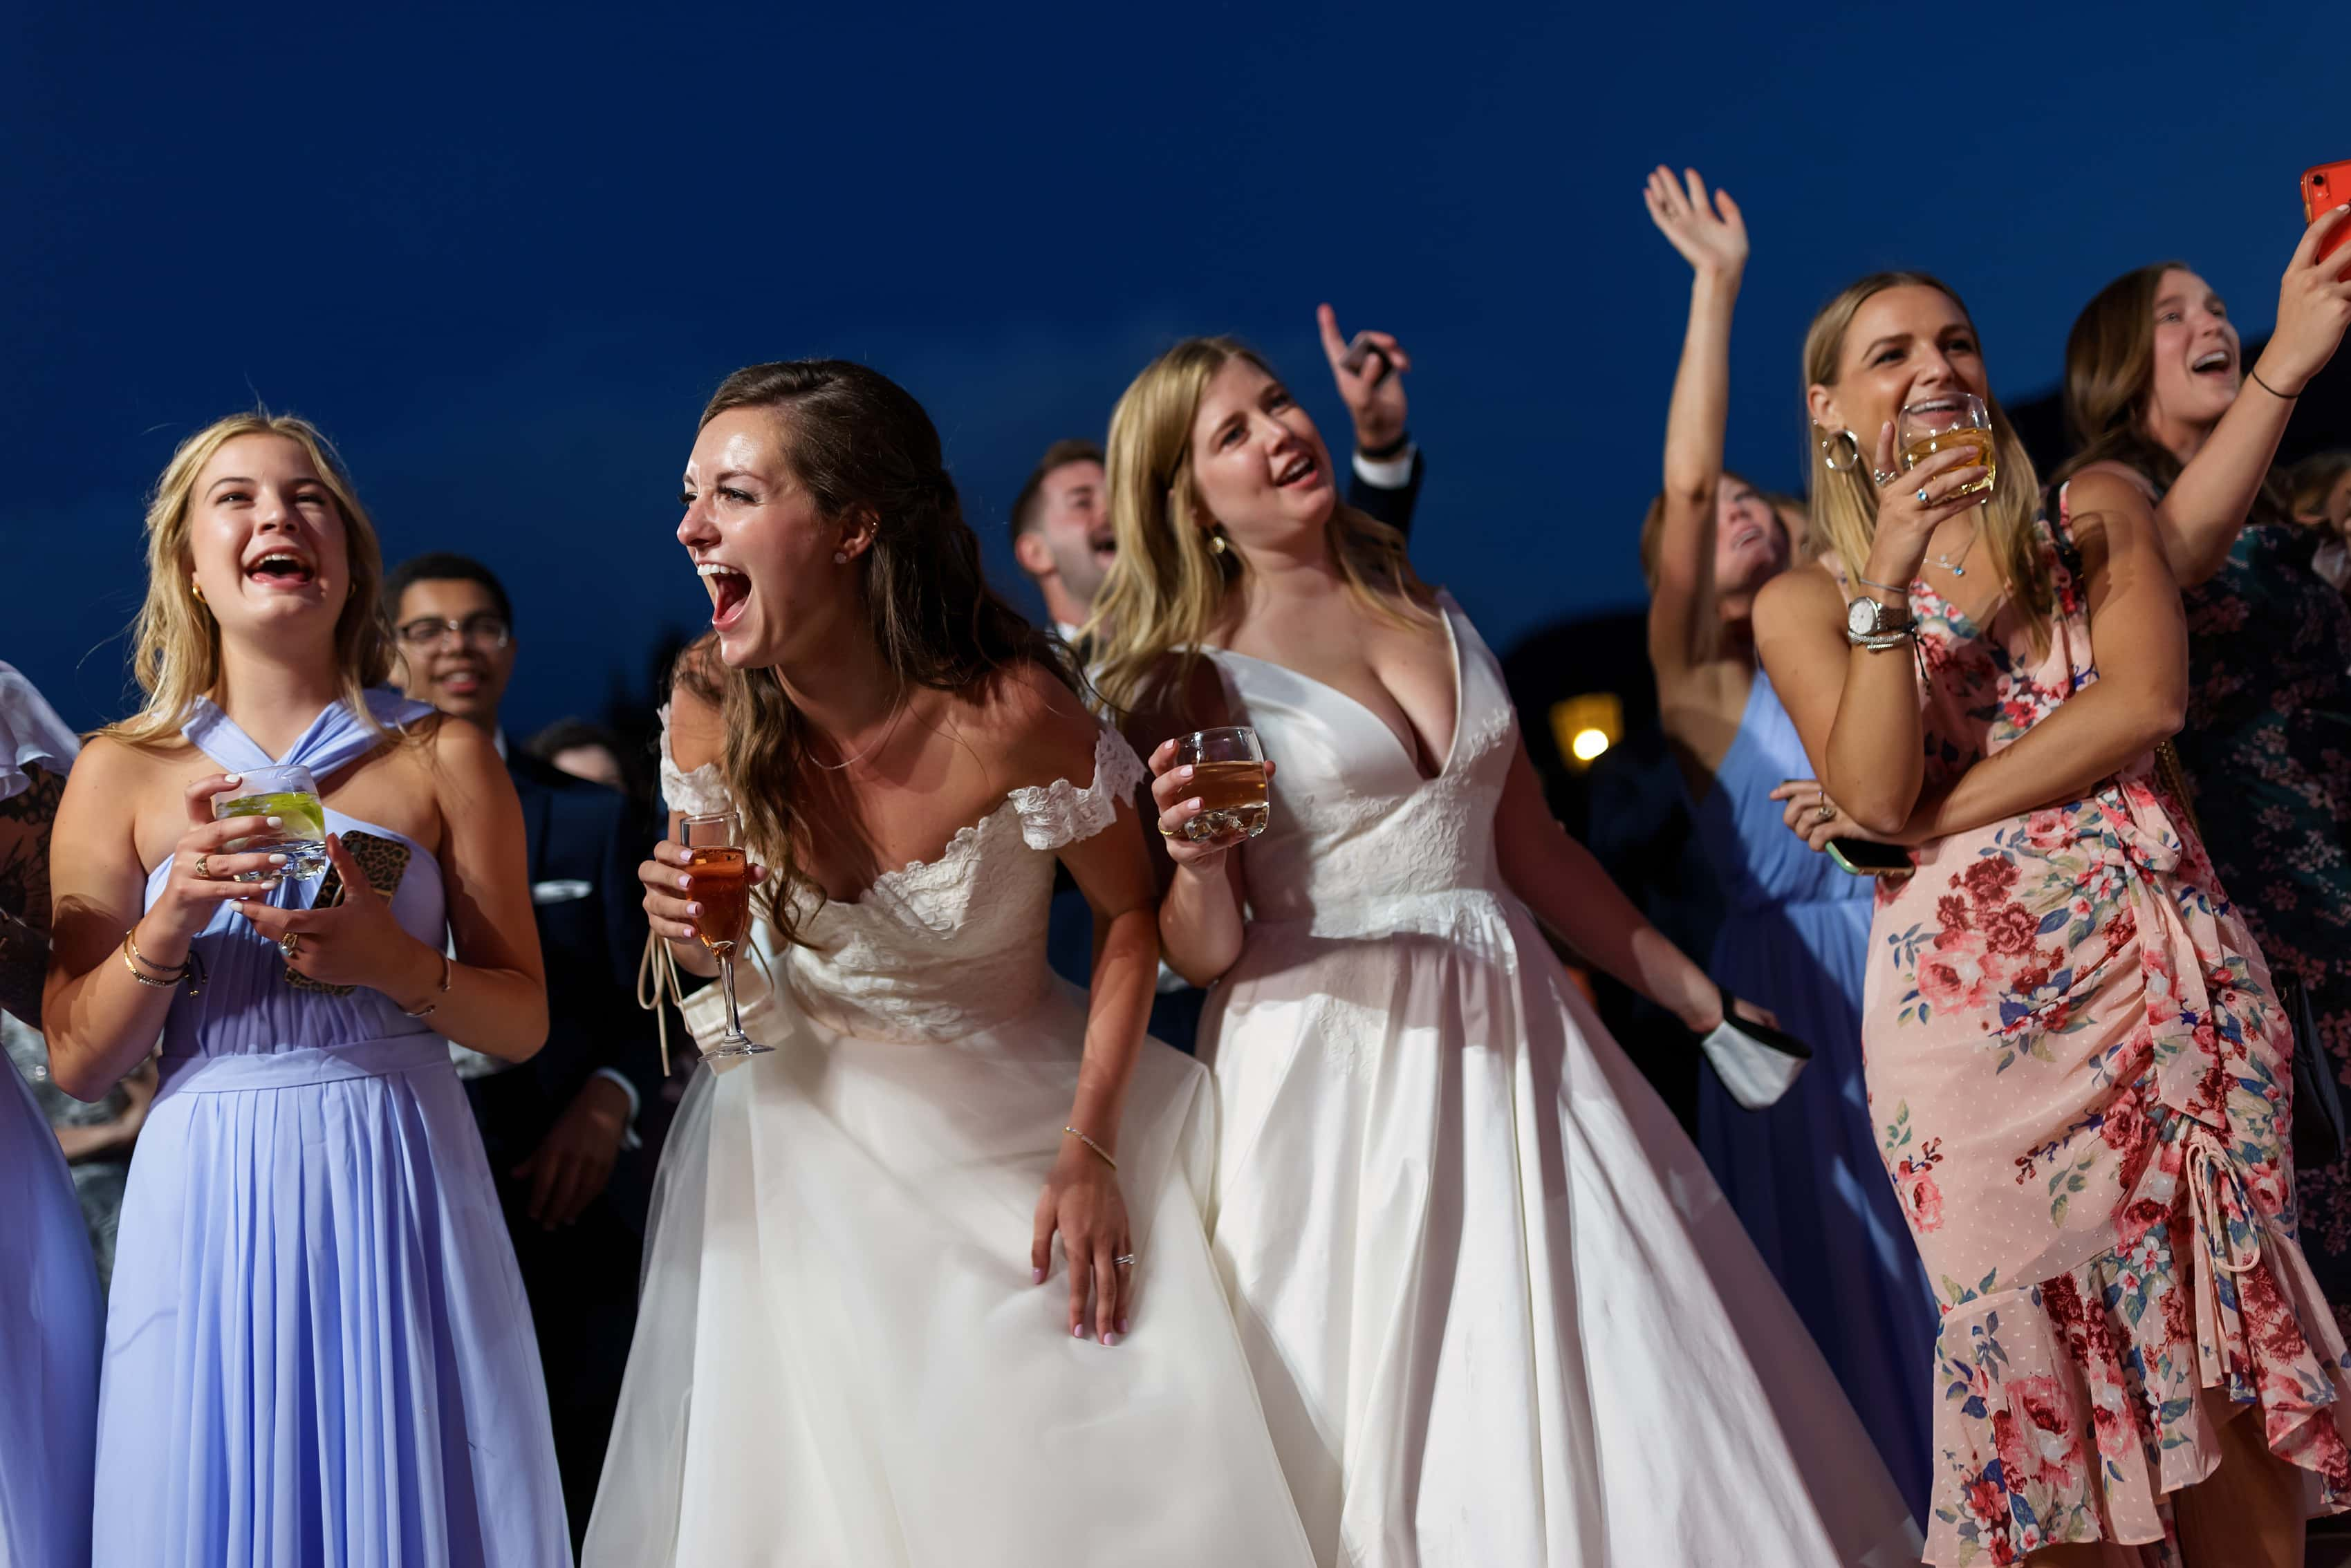 brides and guests react to a surprise musical performance by friend during wedding reception at The Broadmoor Hotel